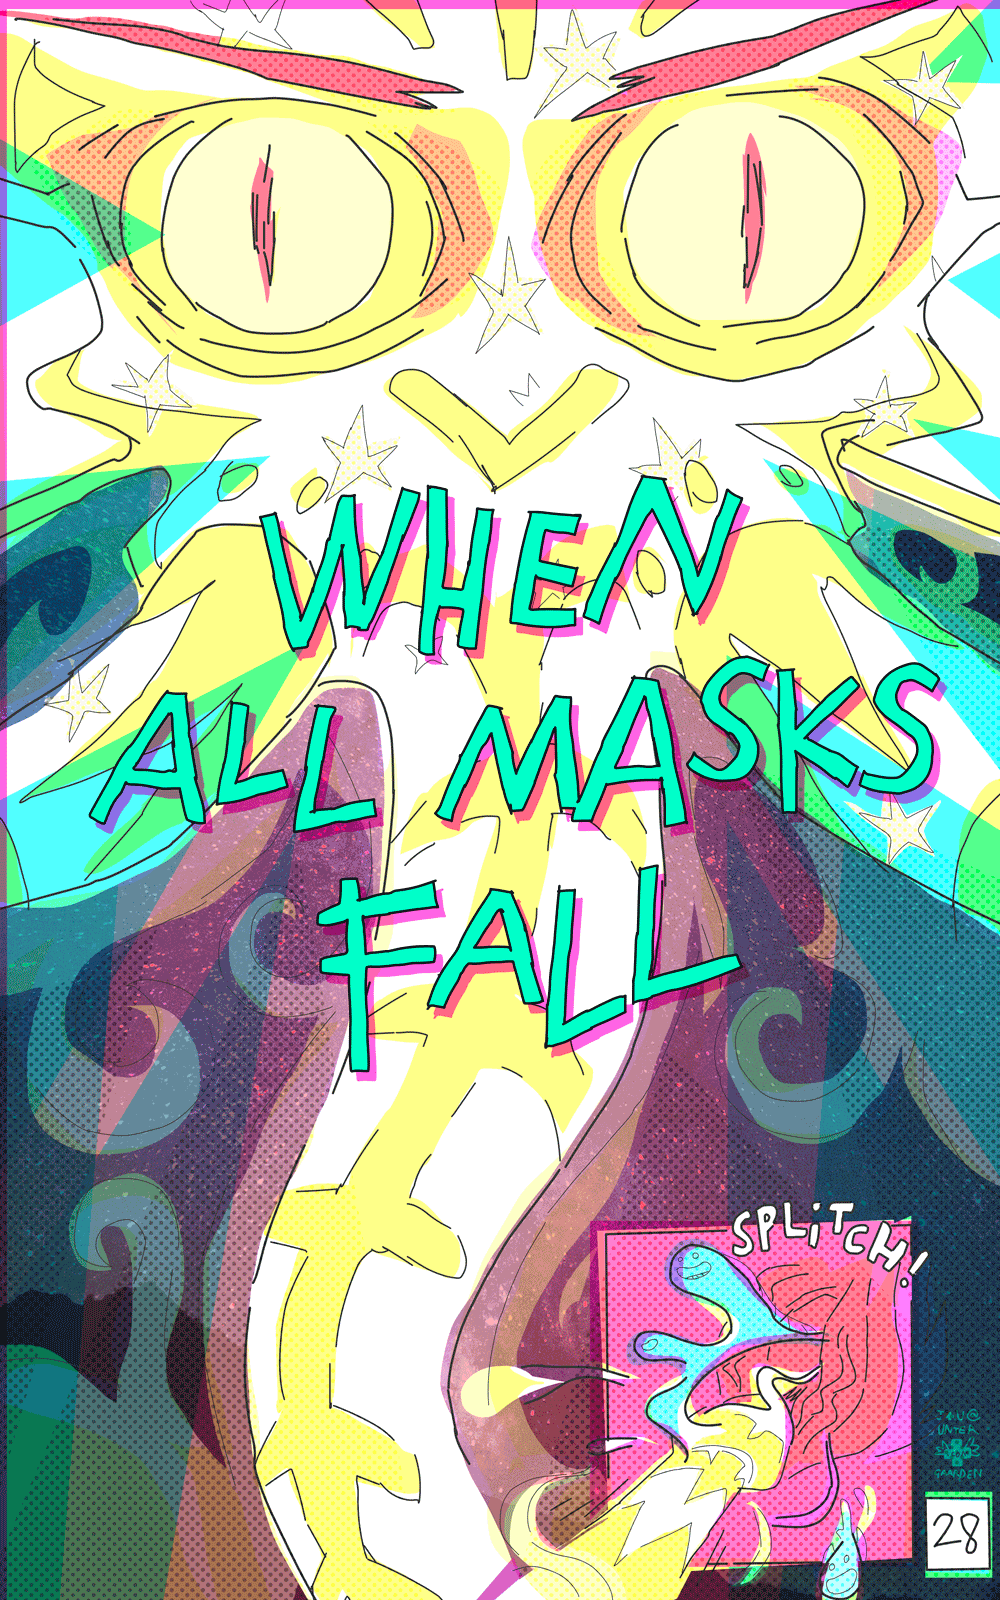 Because this is the night when all masks fall